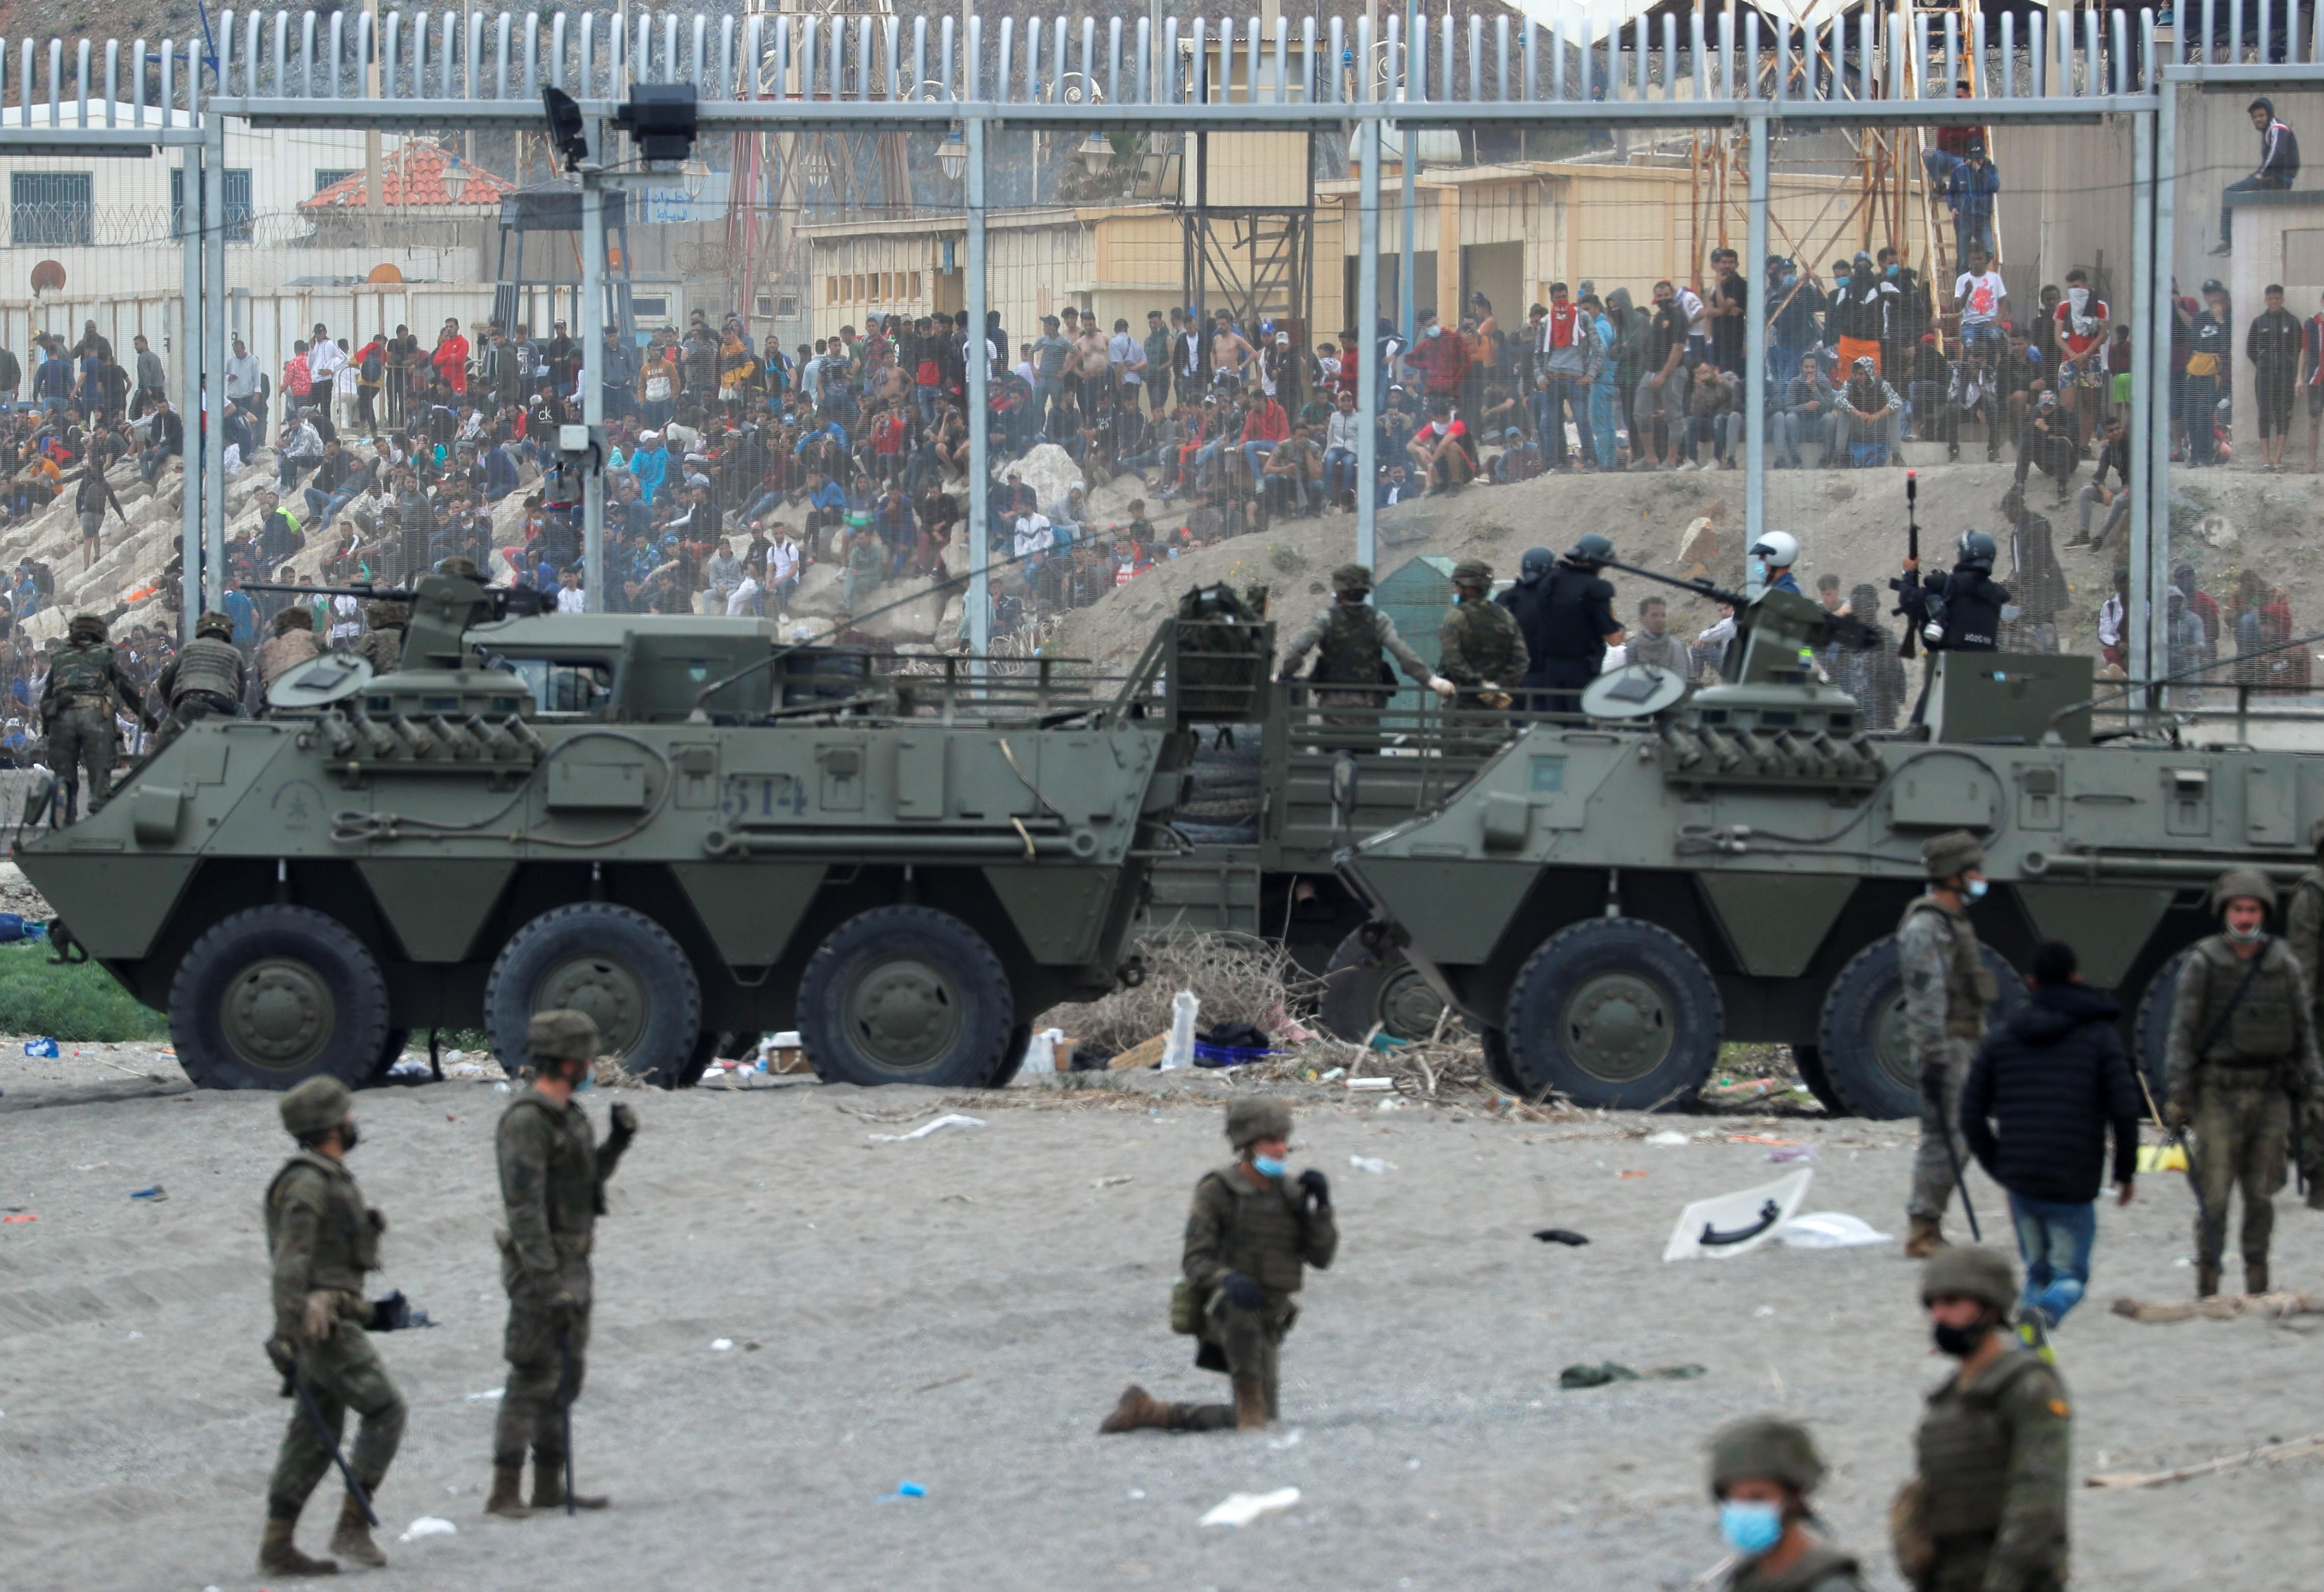 What We're Watching: Morocco-Spain border crisis, Belarus police target protesters, no beef from Argentina